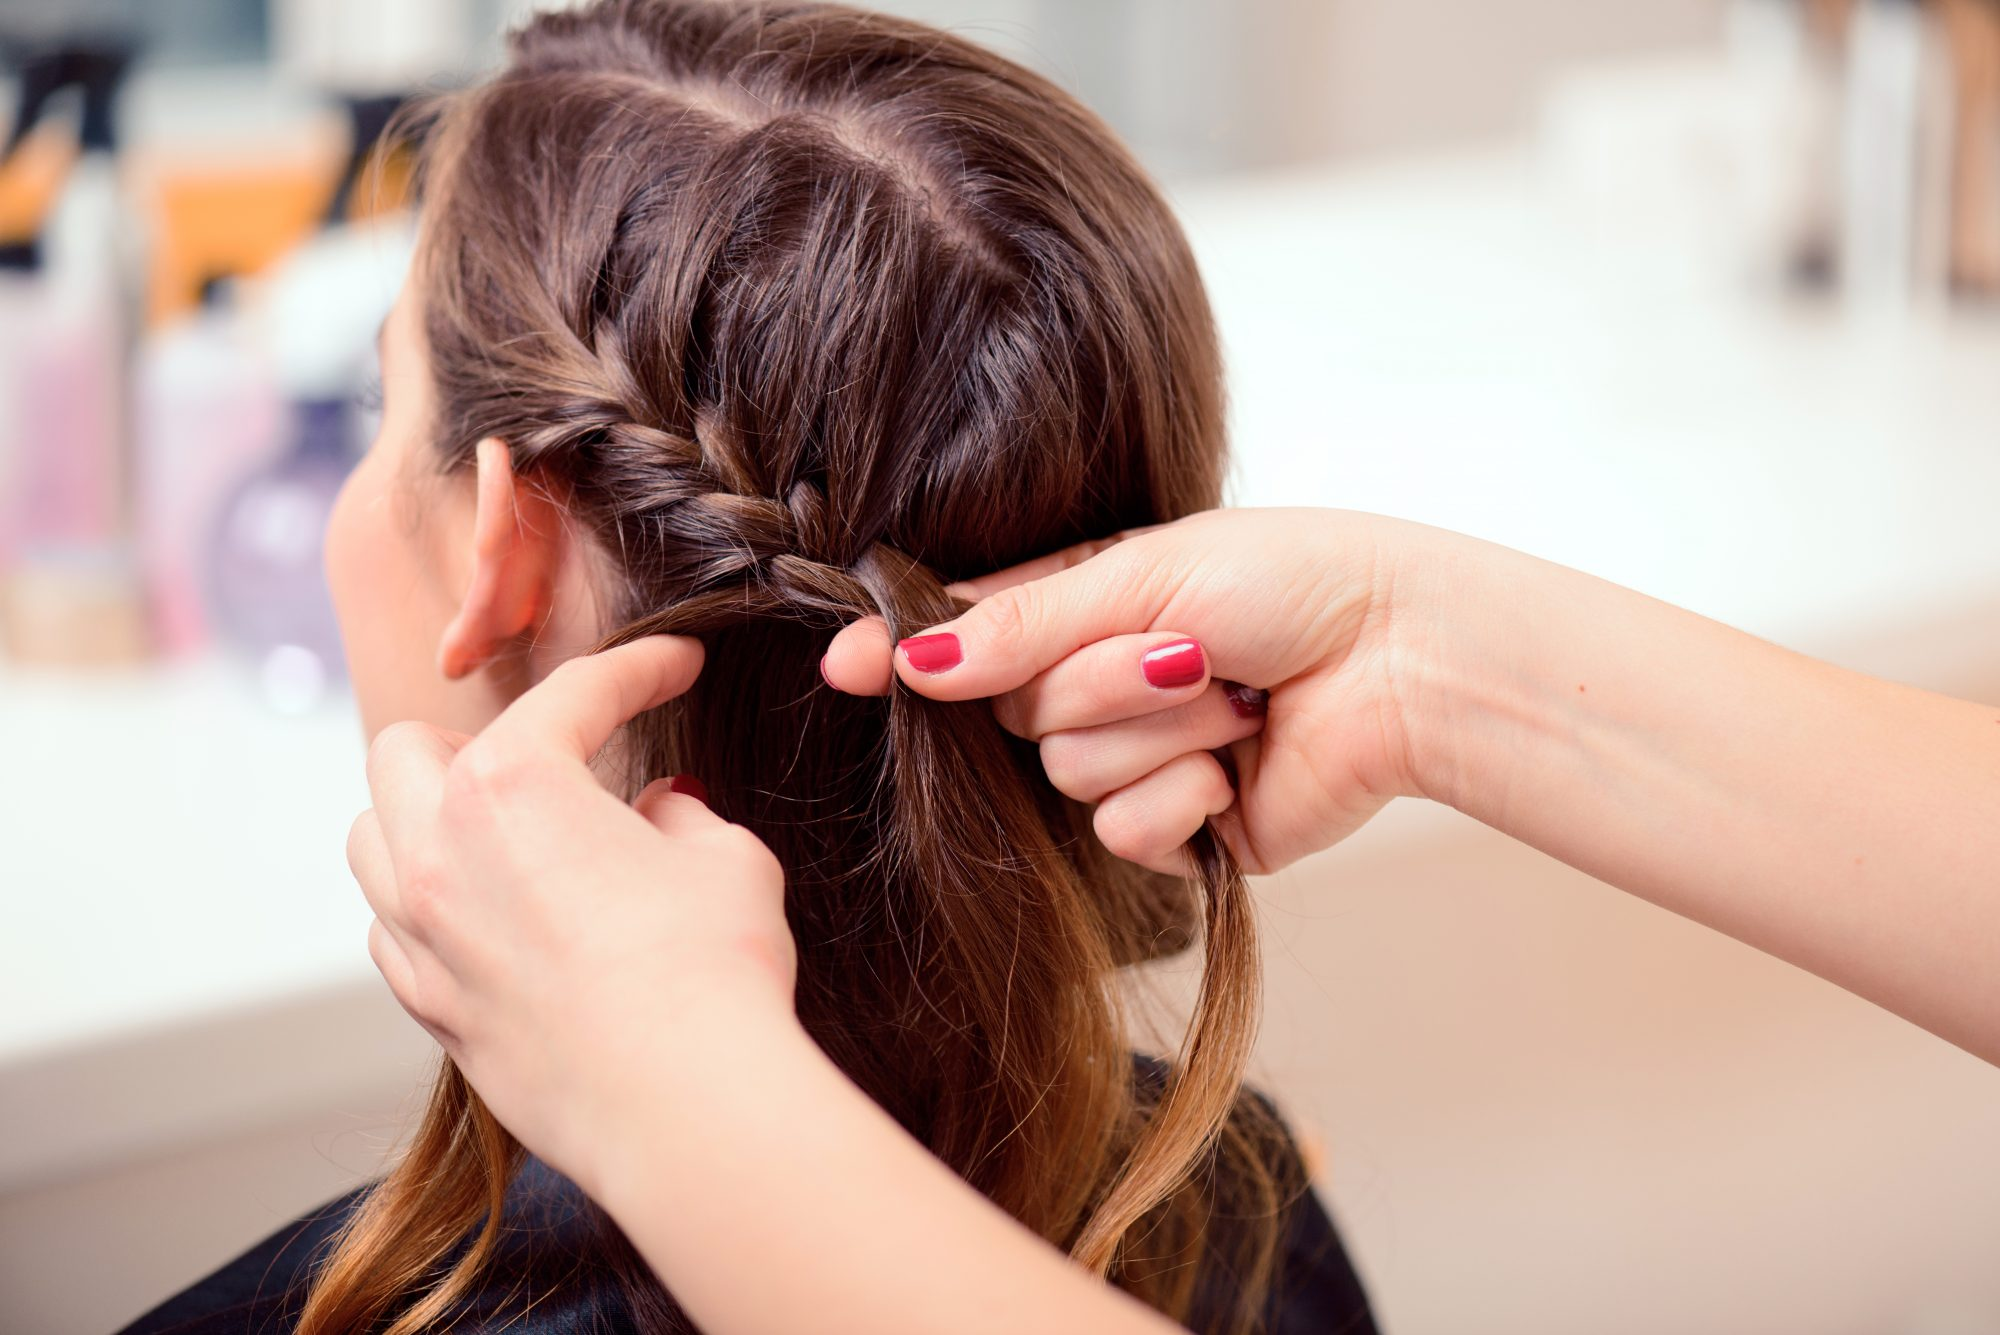 The Best Braiding Tutorials—Fishtail, French, and More